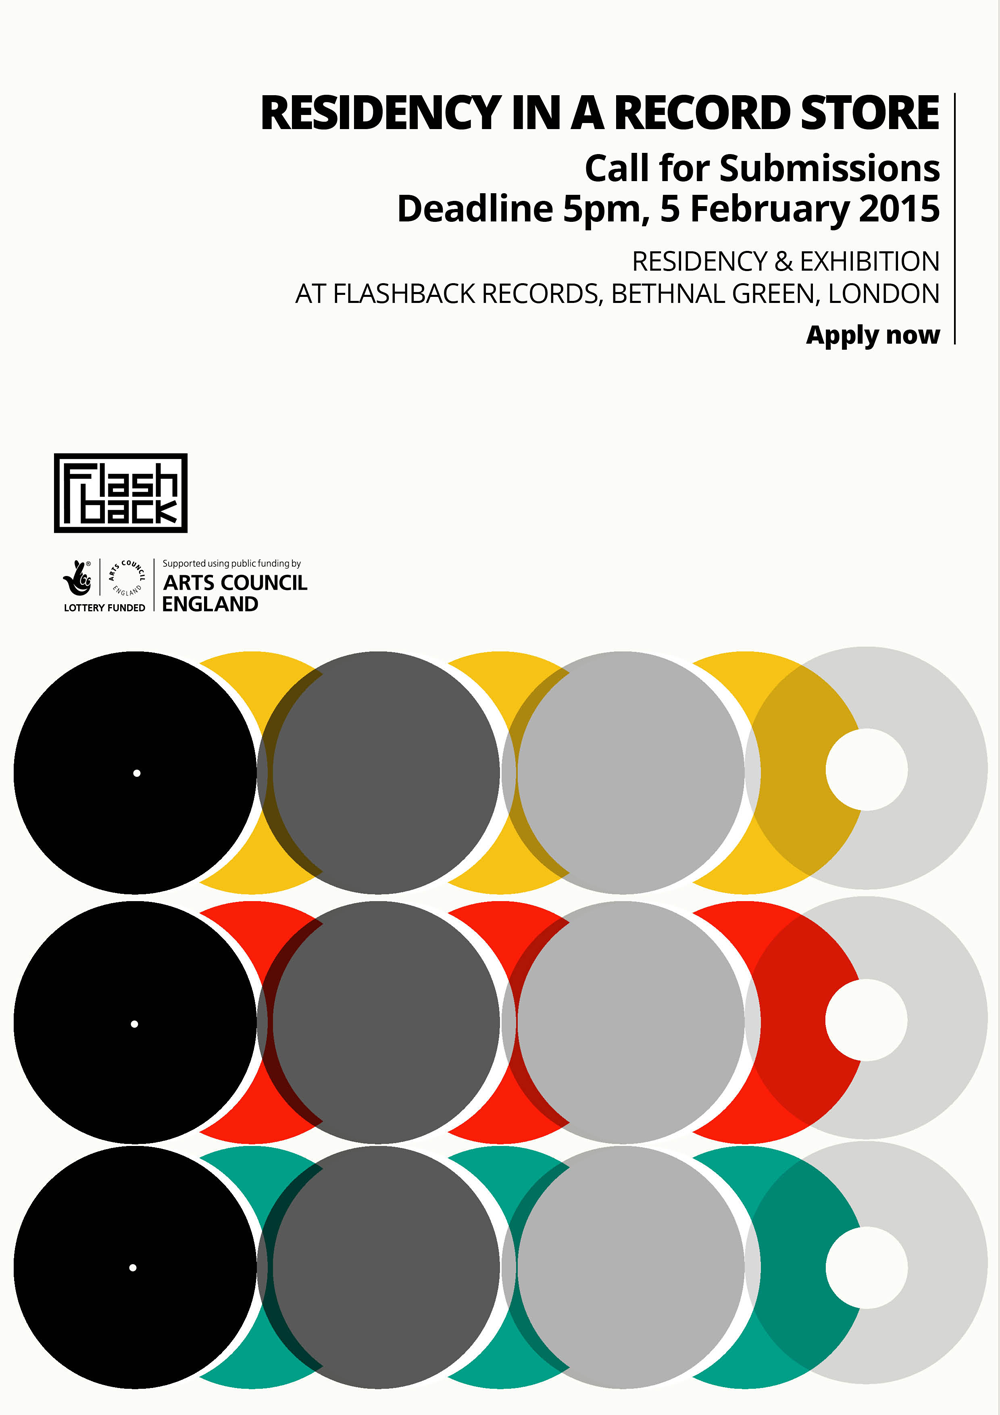 Record Store Residency Flyer